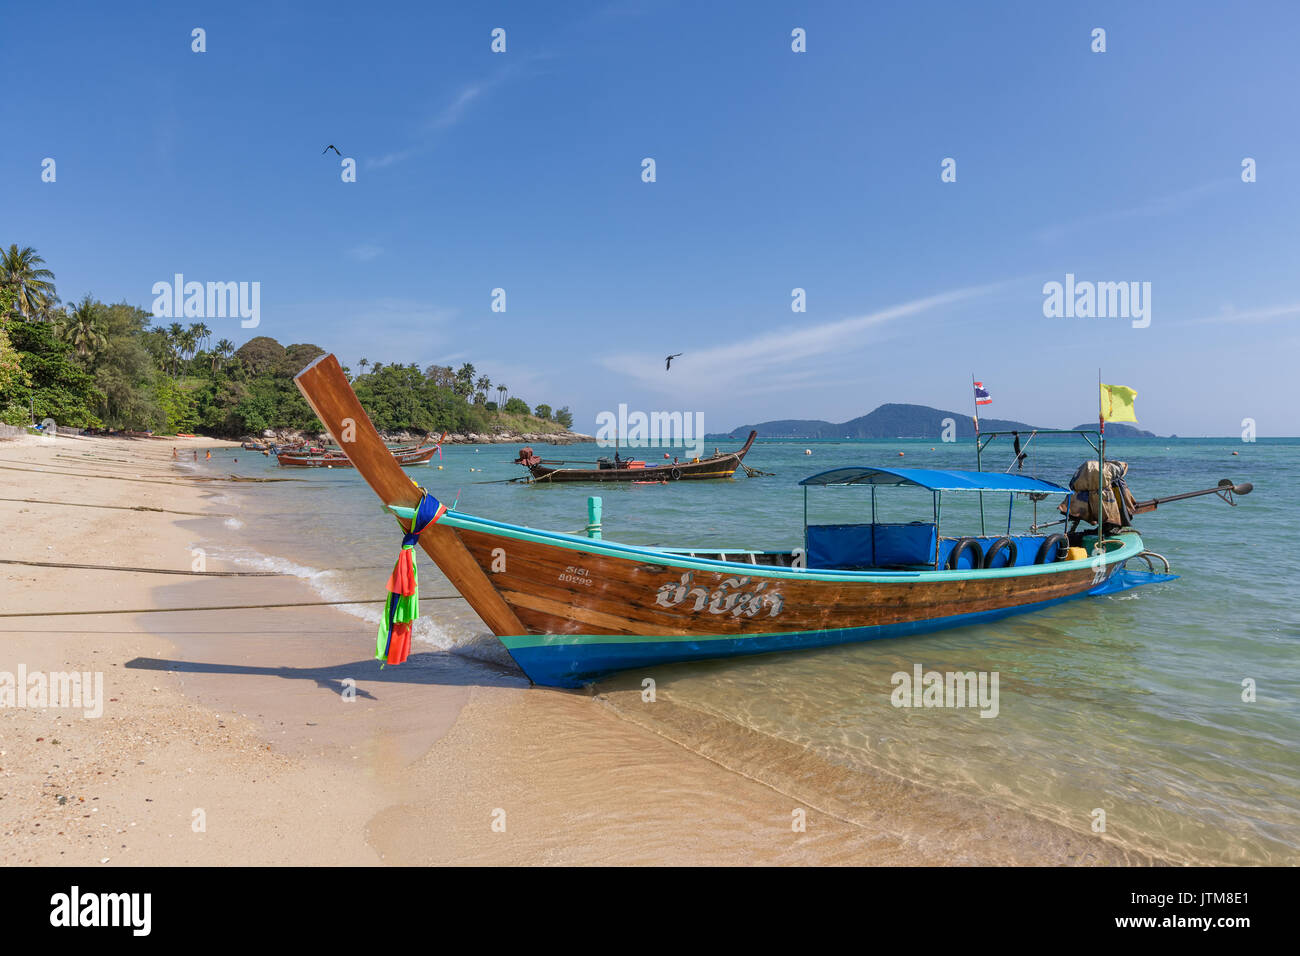 Traditional longtail fishing boats moored at Rawai Beach, Phuket, Thailand - Stock Image